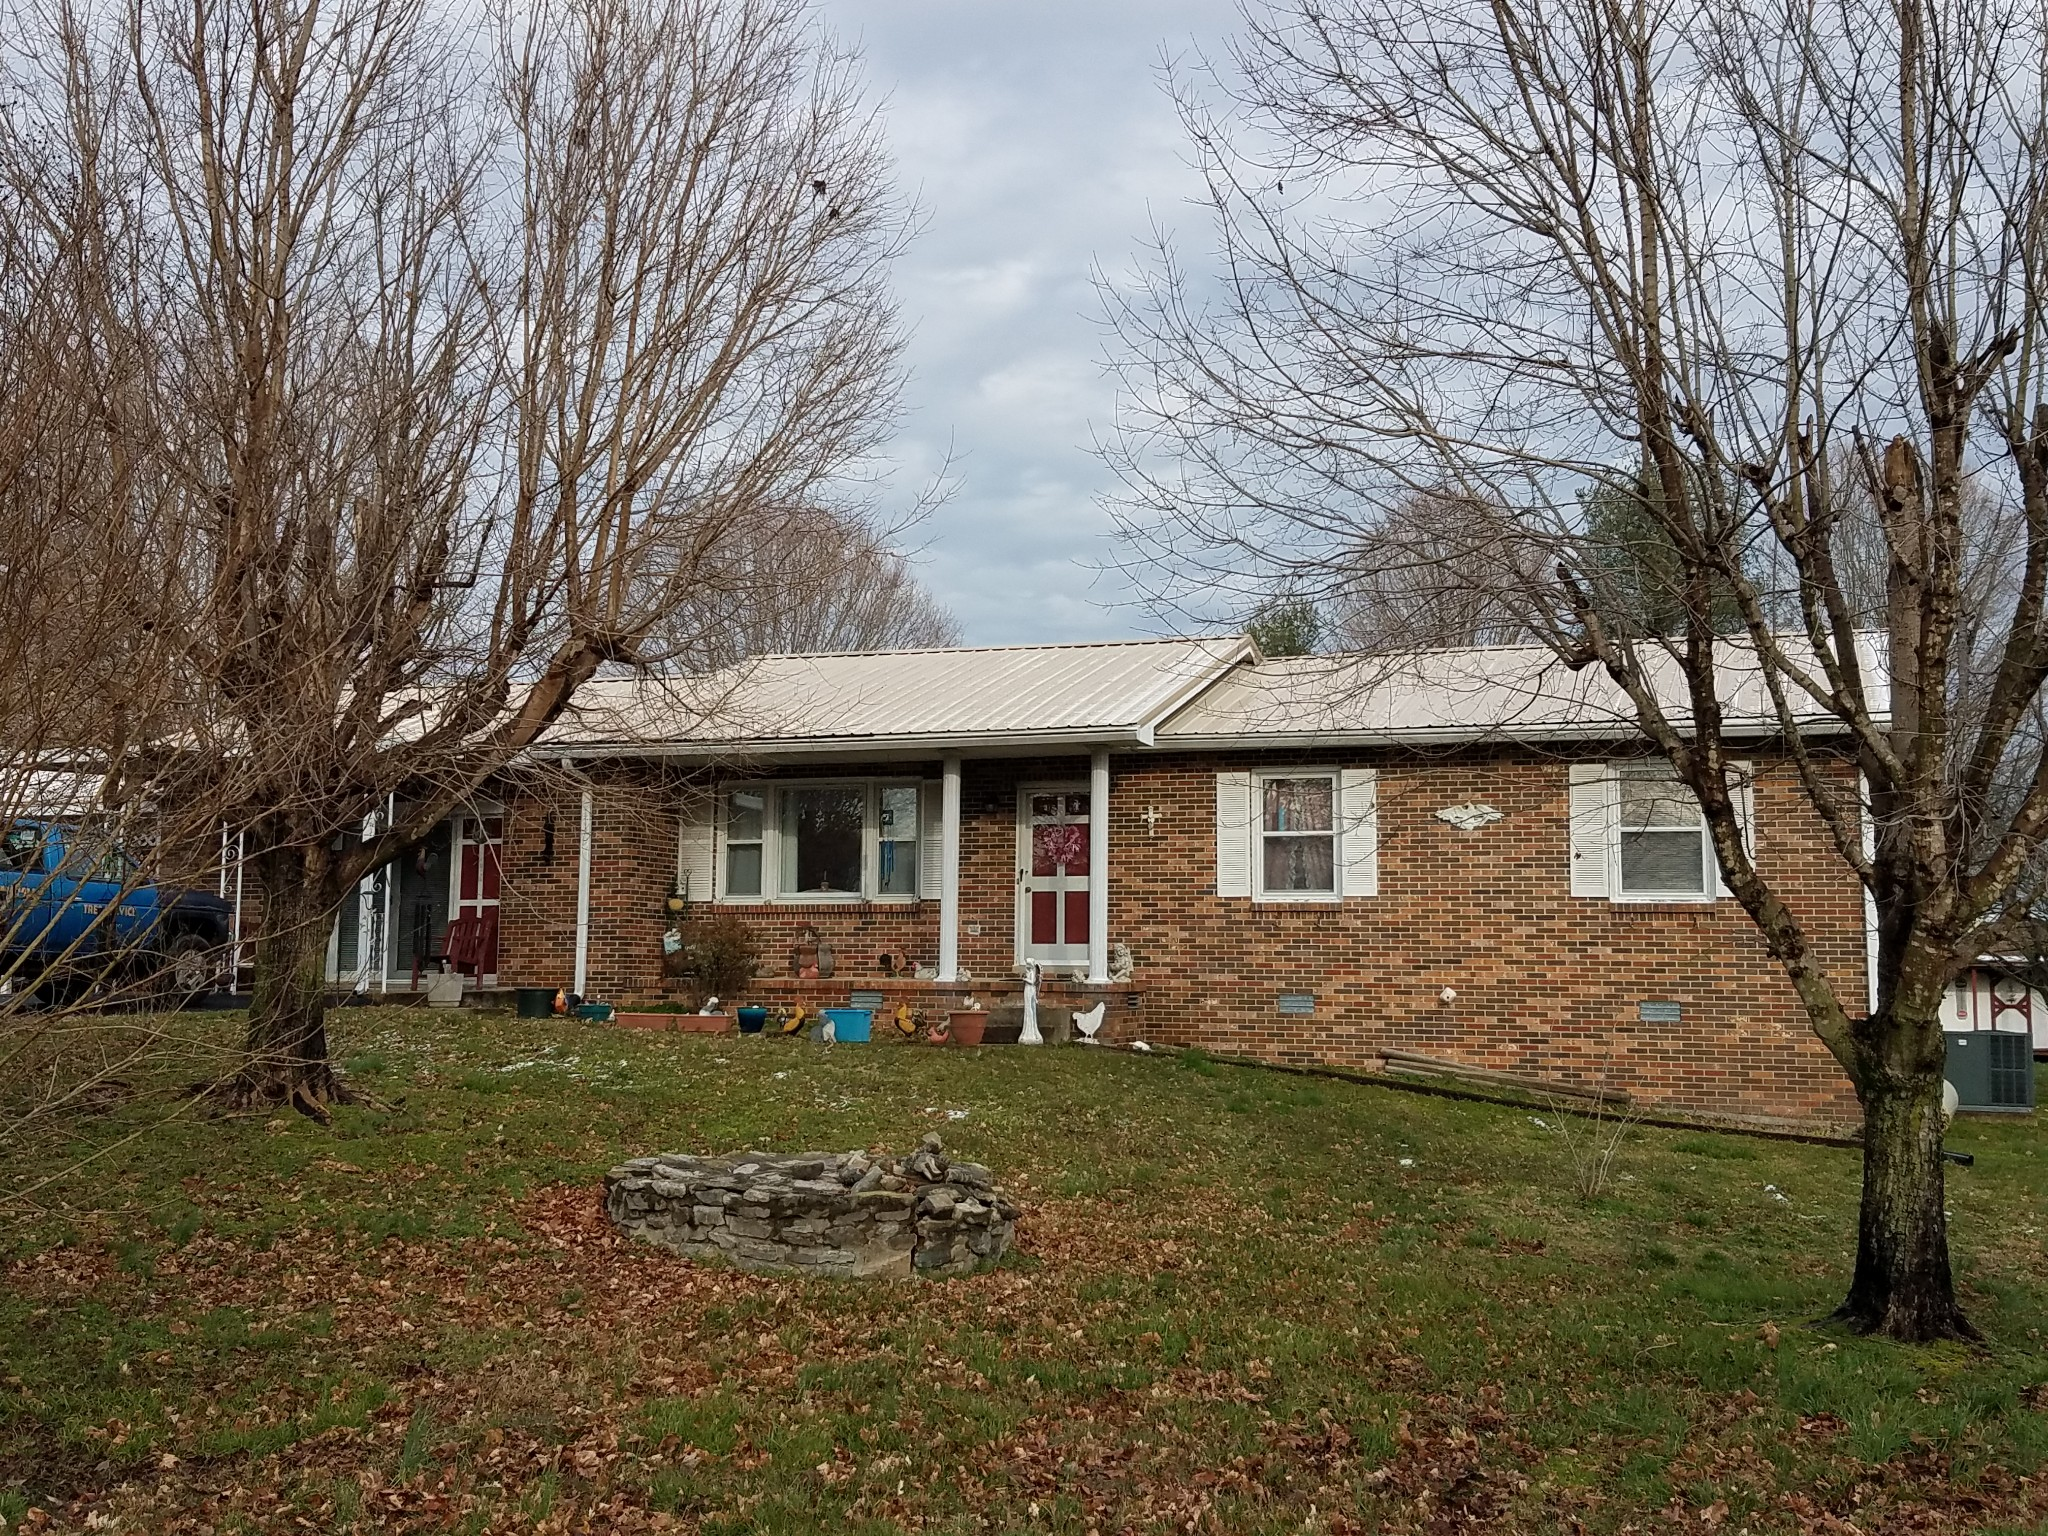 7480 Deer Ridge Rd, Primm Springs, TN 38476 - Primm Springs, TN real estate listing